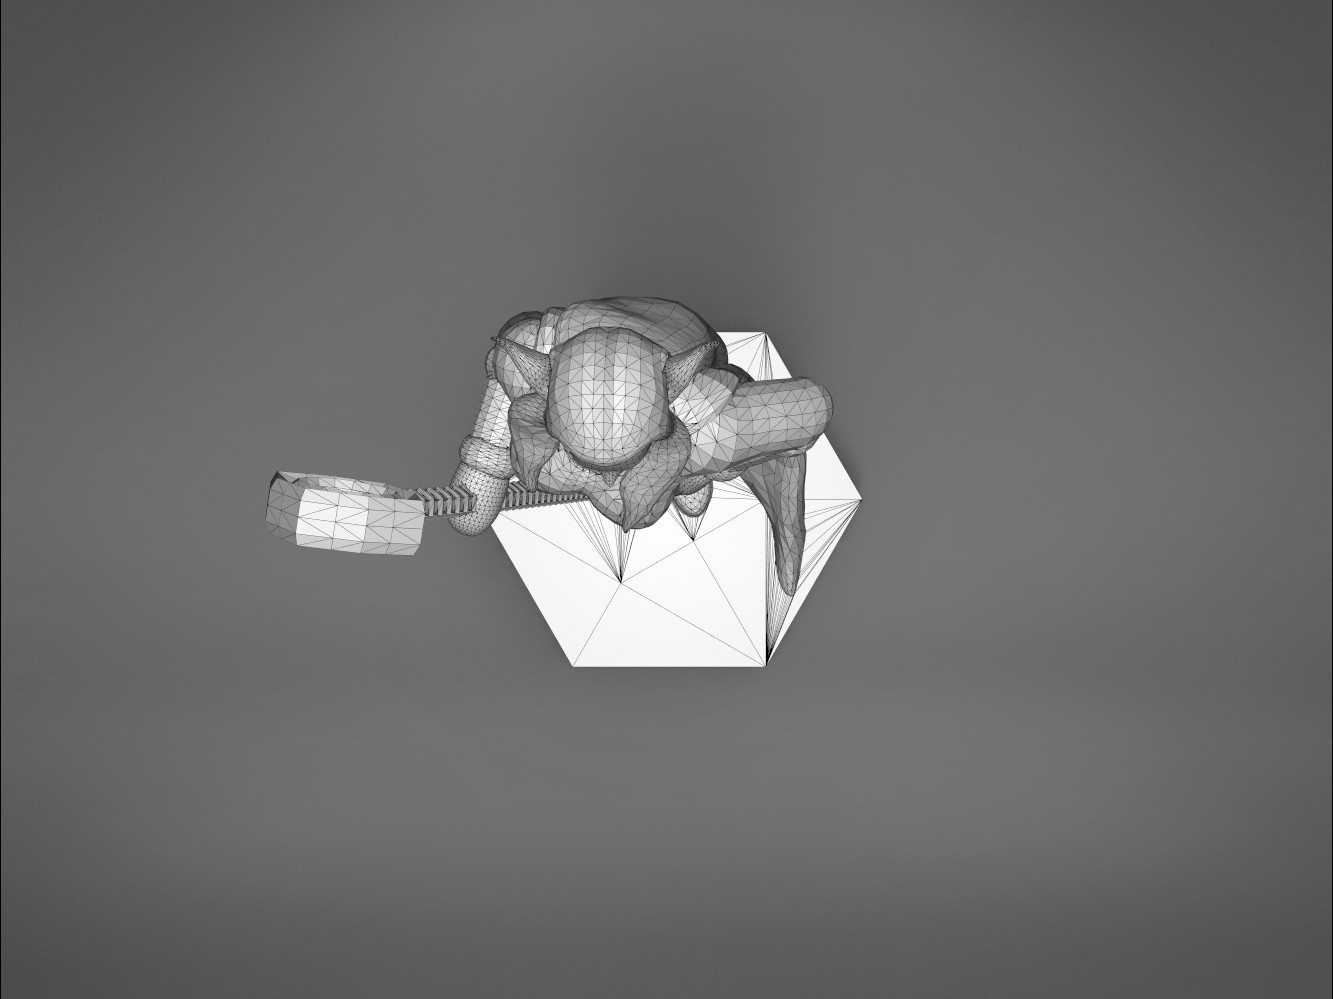 Mage_2_-top_perspective.169.jpg Download STL file ELF MAGE FEMALE CHARACTER GAME FIGURES 3D print model • 3D printing template, 3D-mon